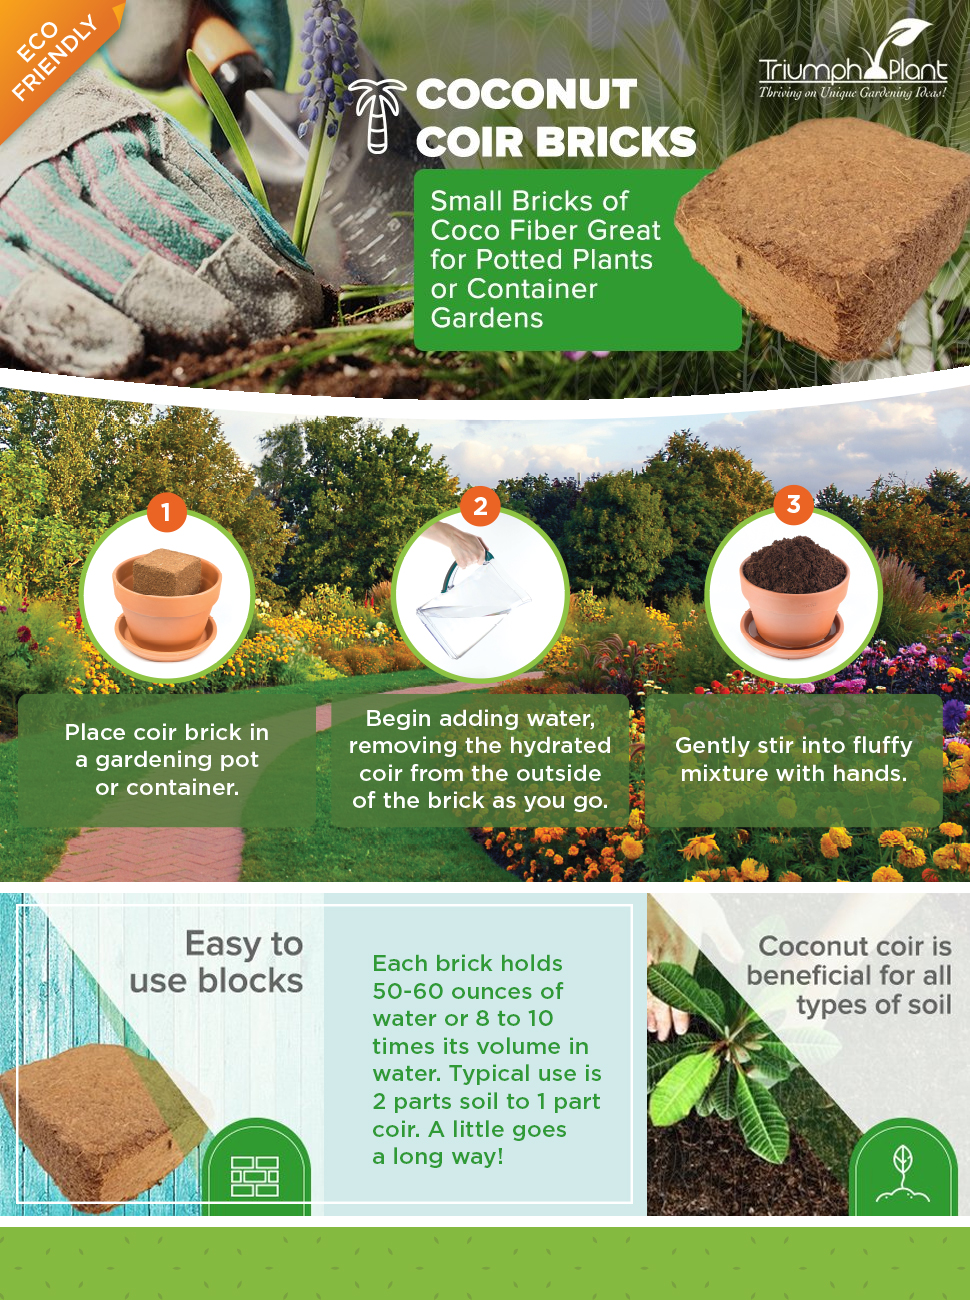 ADD TRIUMPH PLANT COCO COIR BRICKS TO YOUR GARDEN